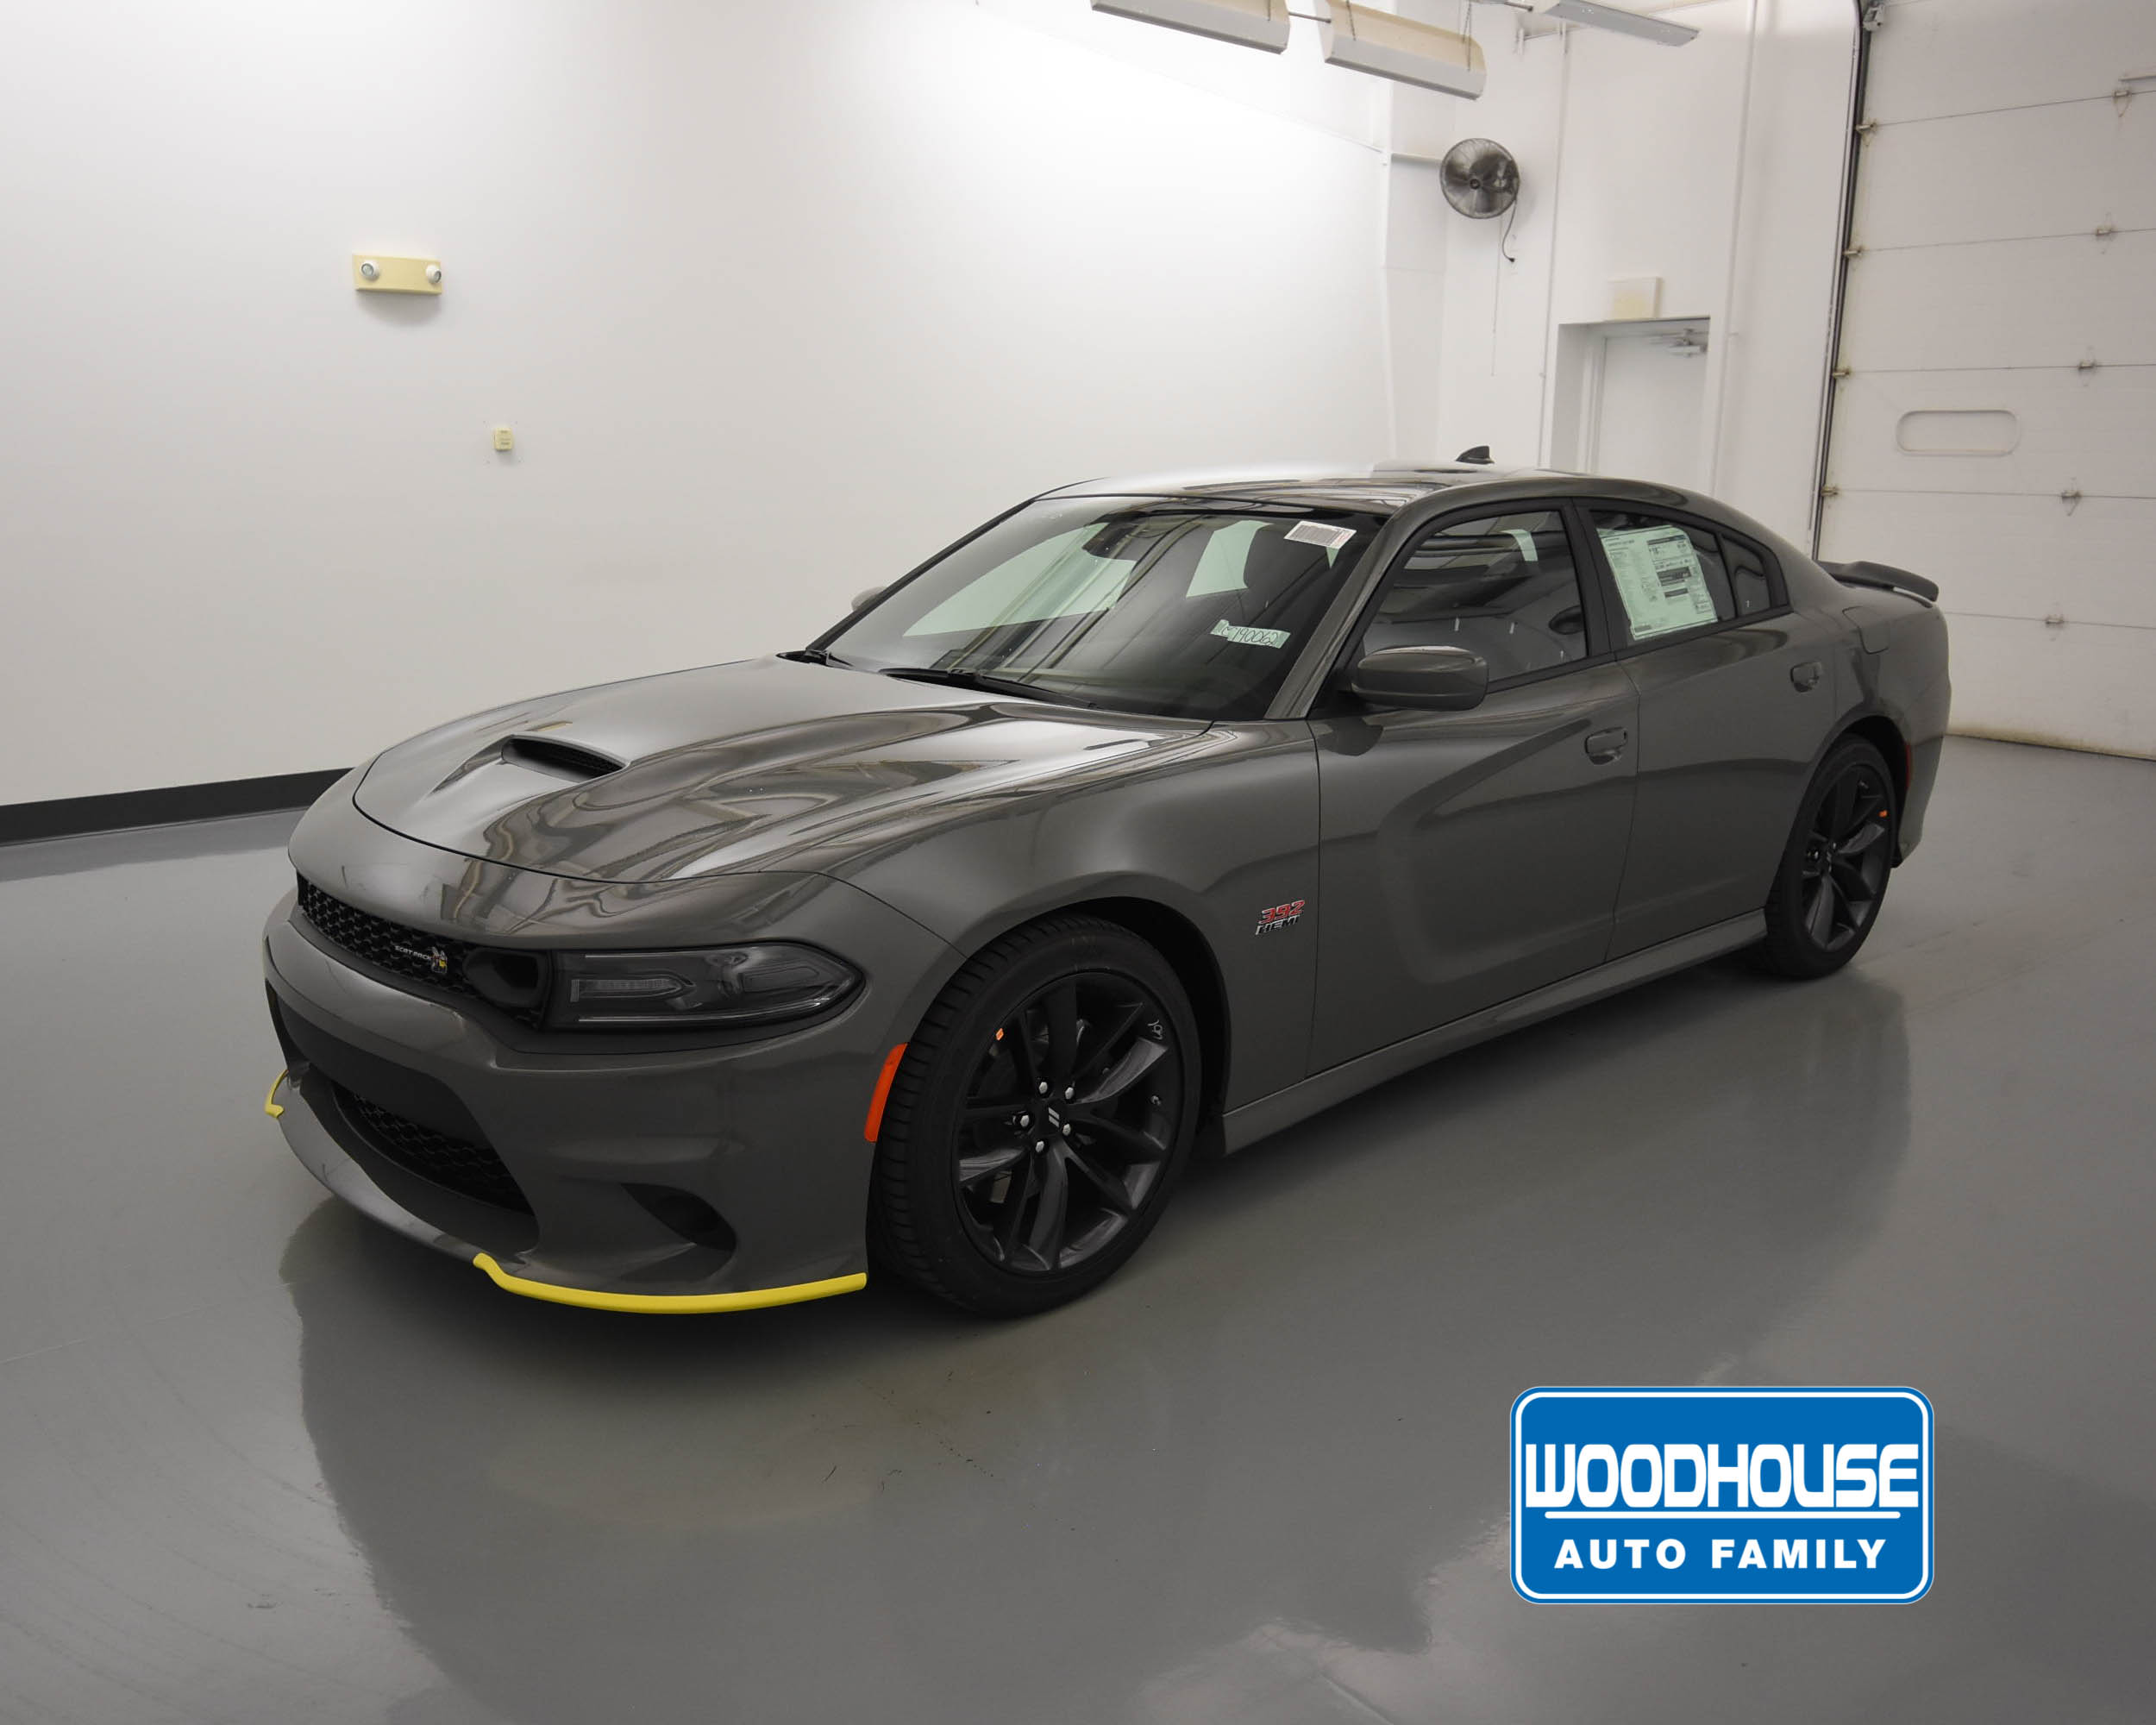 Woodhouse New 2019 Dodge Charger For Sale Chrysler Dodge Jeep Ram